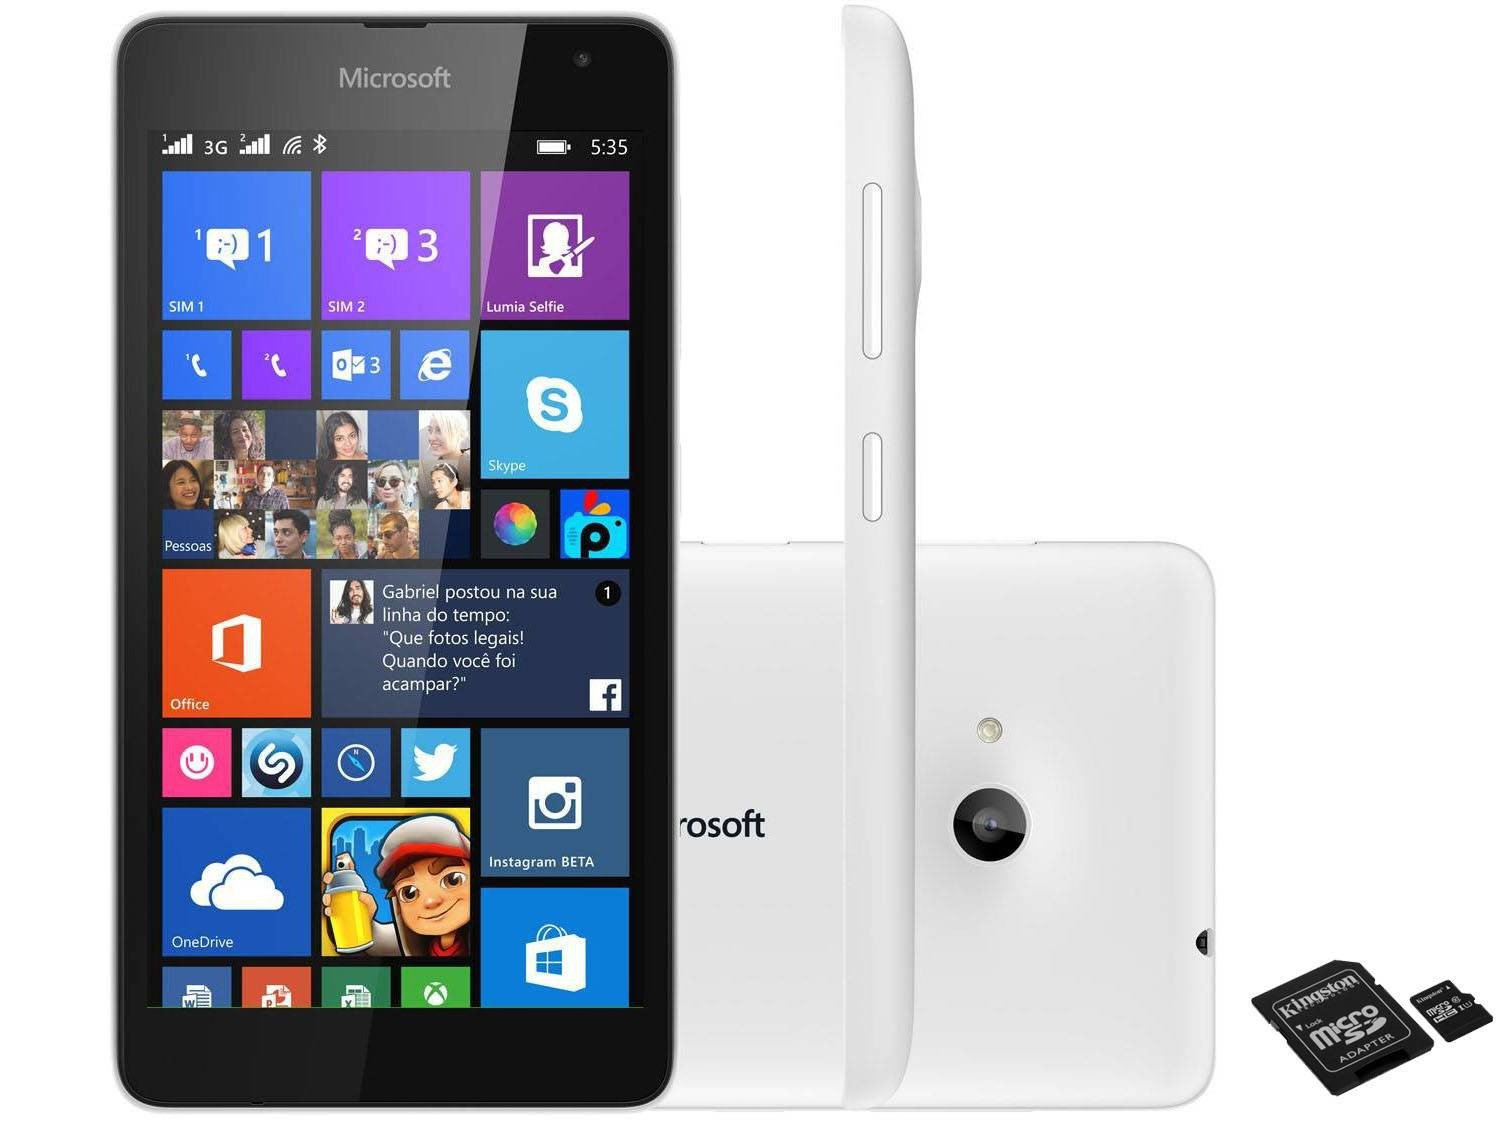 will paid how to connect microsoft lumia 535 to pc developed